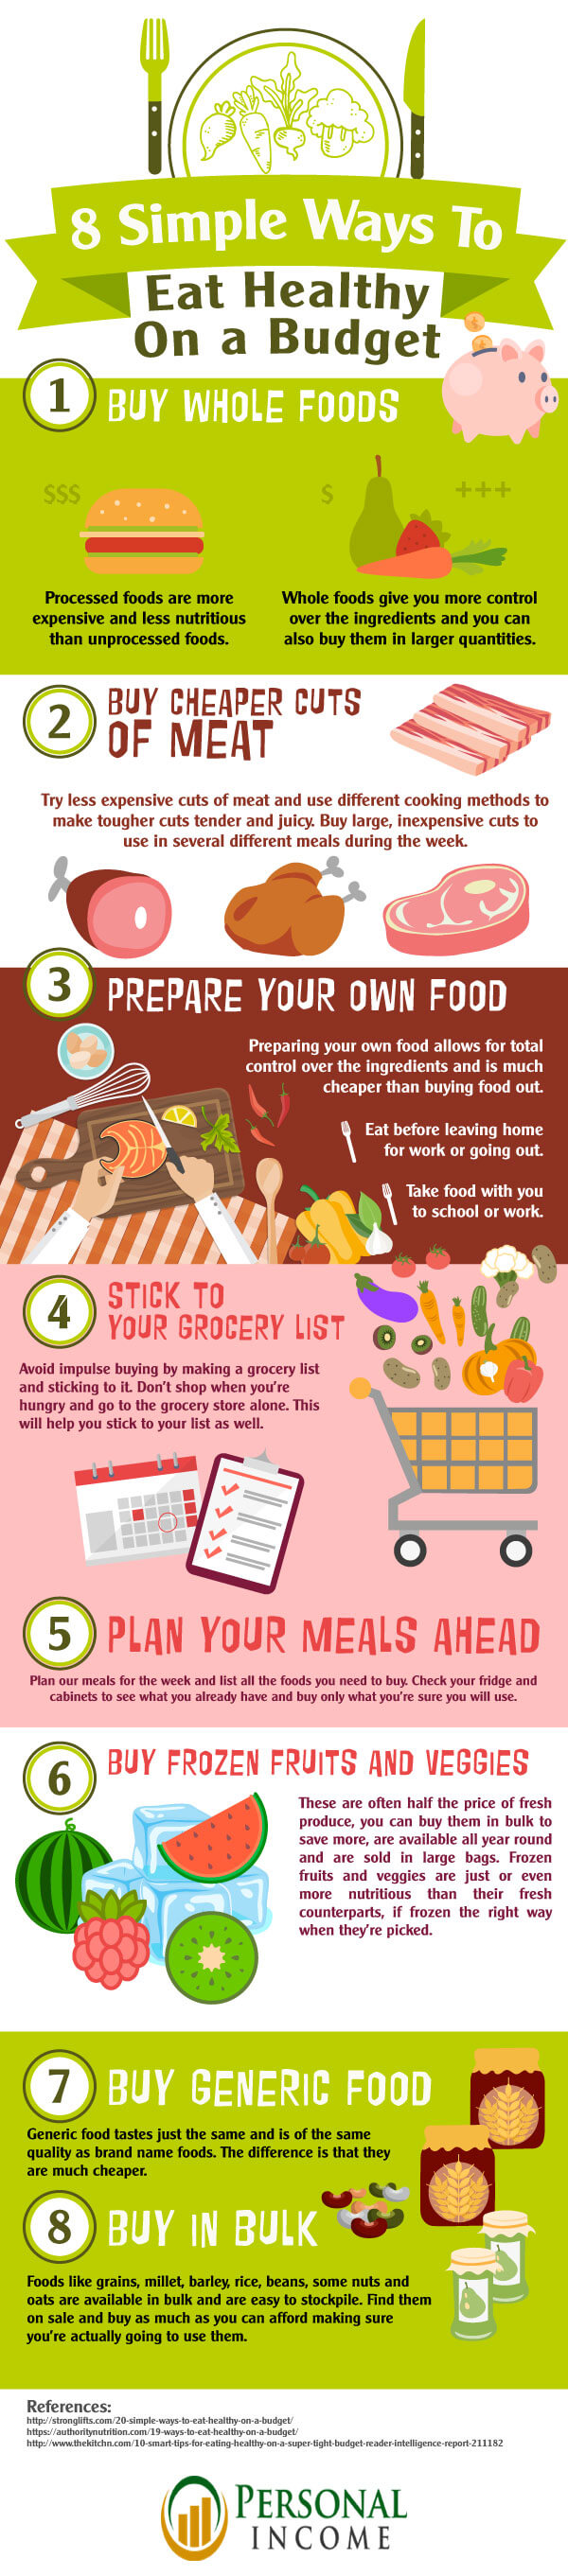 8-Simple-Ways-To-Eat-Healthy-On-a-Budget.jpg